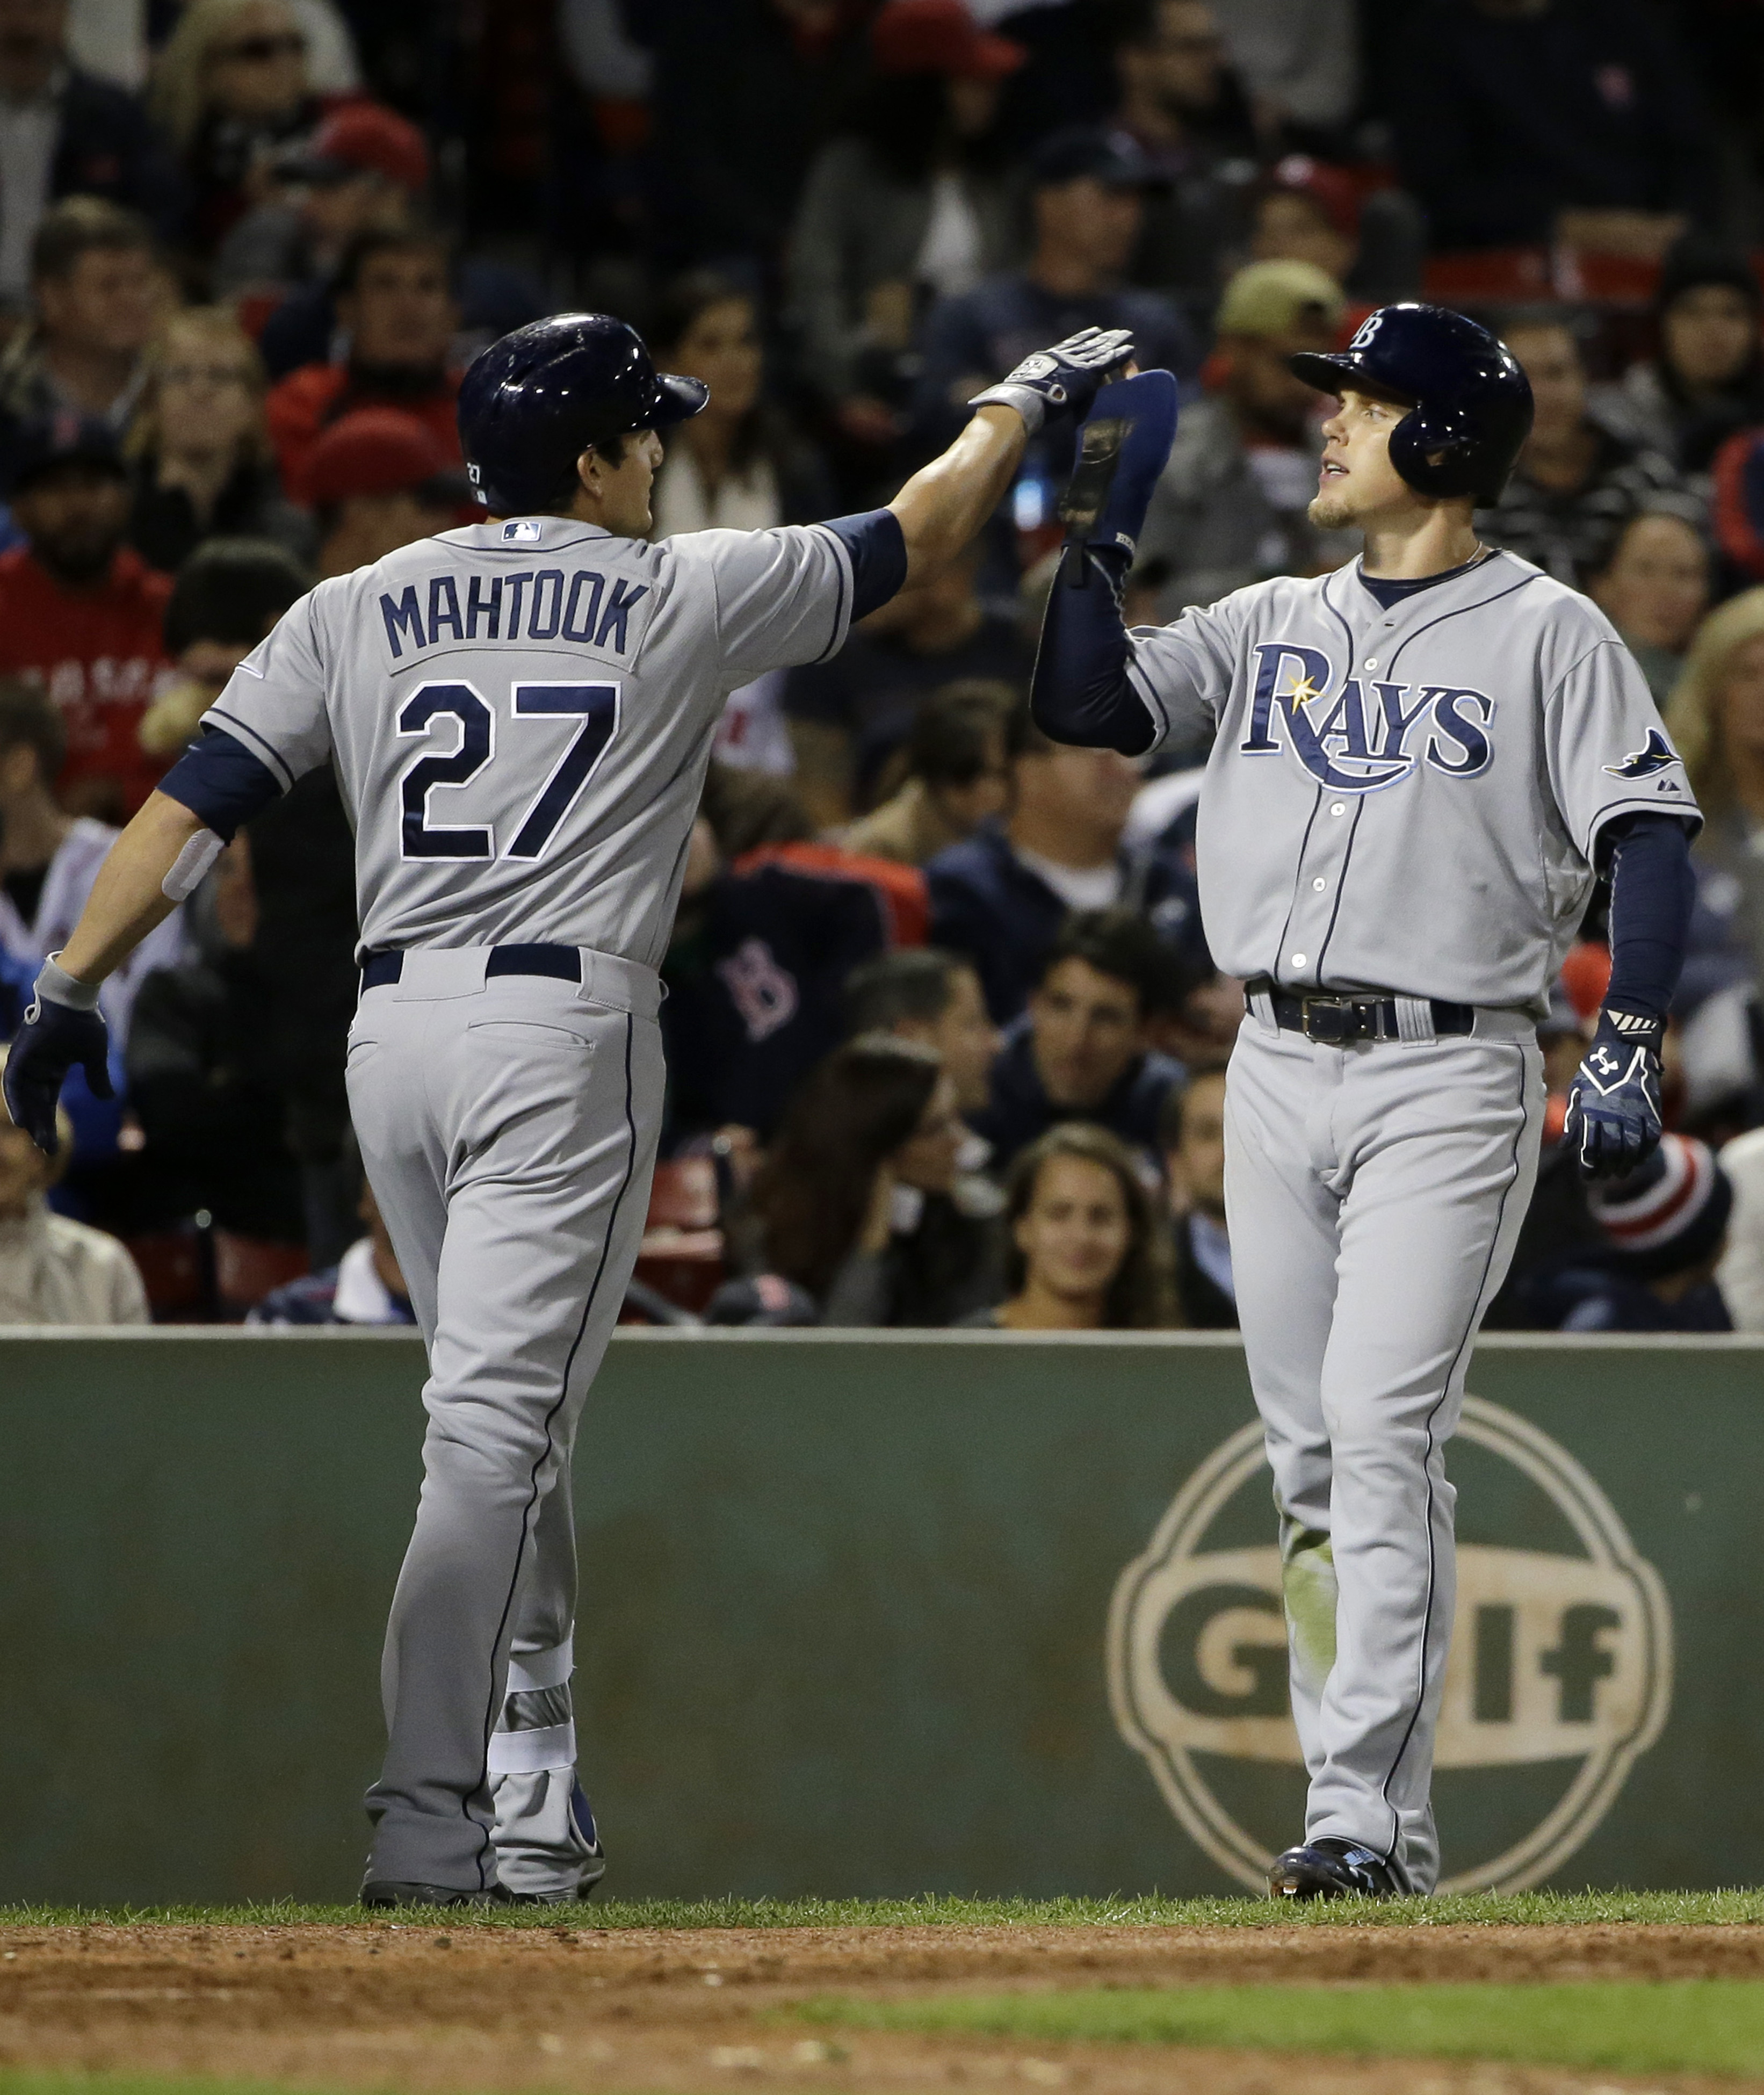 Tampa Bay Rays' Mikie Mahtook, left, celebrates with Brandon Guyer after Mahtook hit a two-run home run, allowing Guyer to score in the eighth inning of a baseball game against the Boston Red Sox, Tuesday, Sept. 22, 2015, in Boston. The Rays won 5-2. (AP